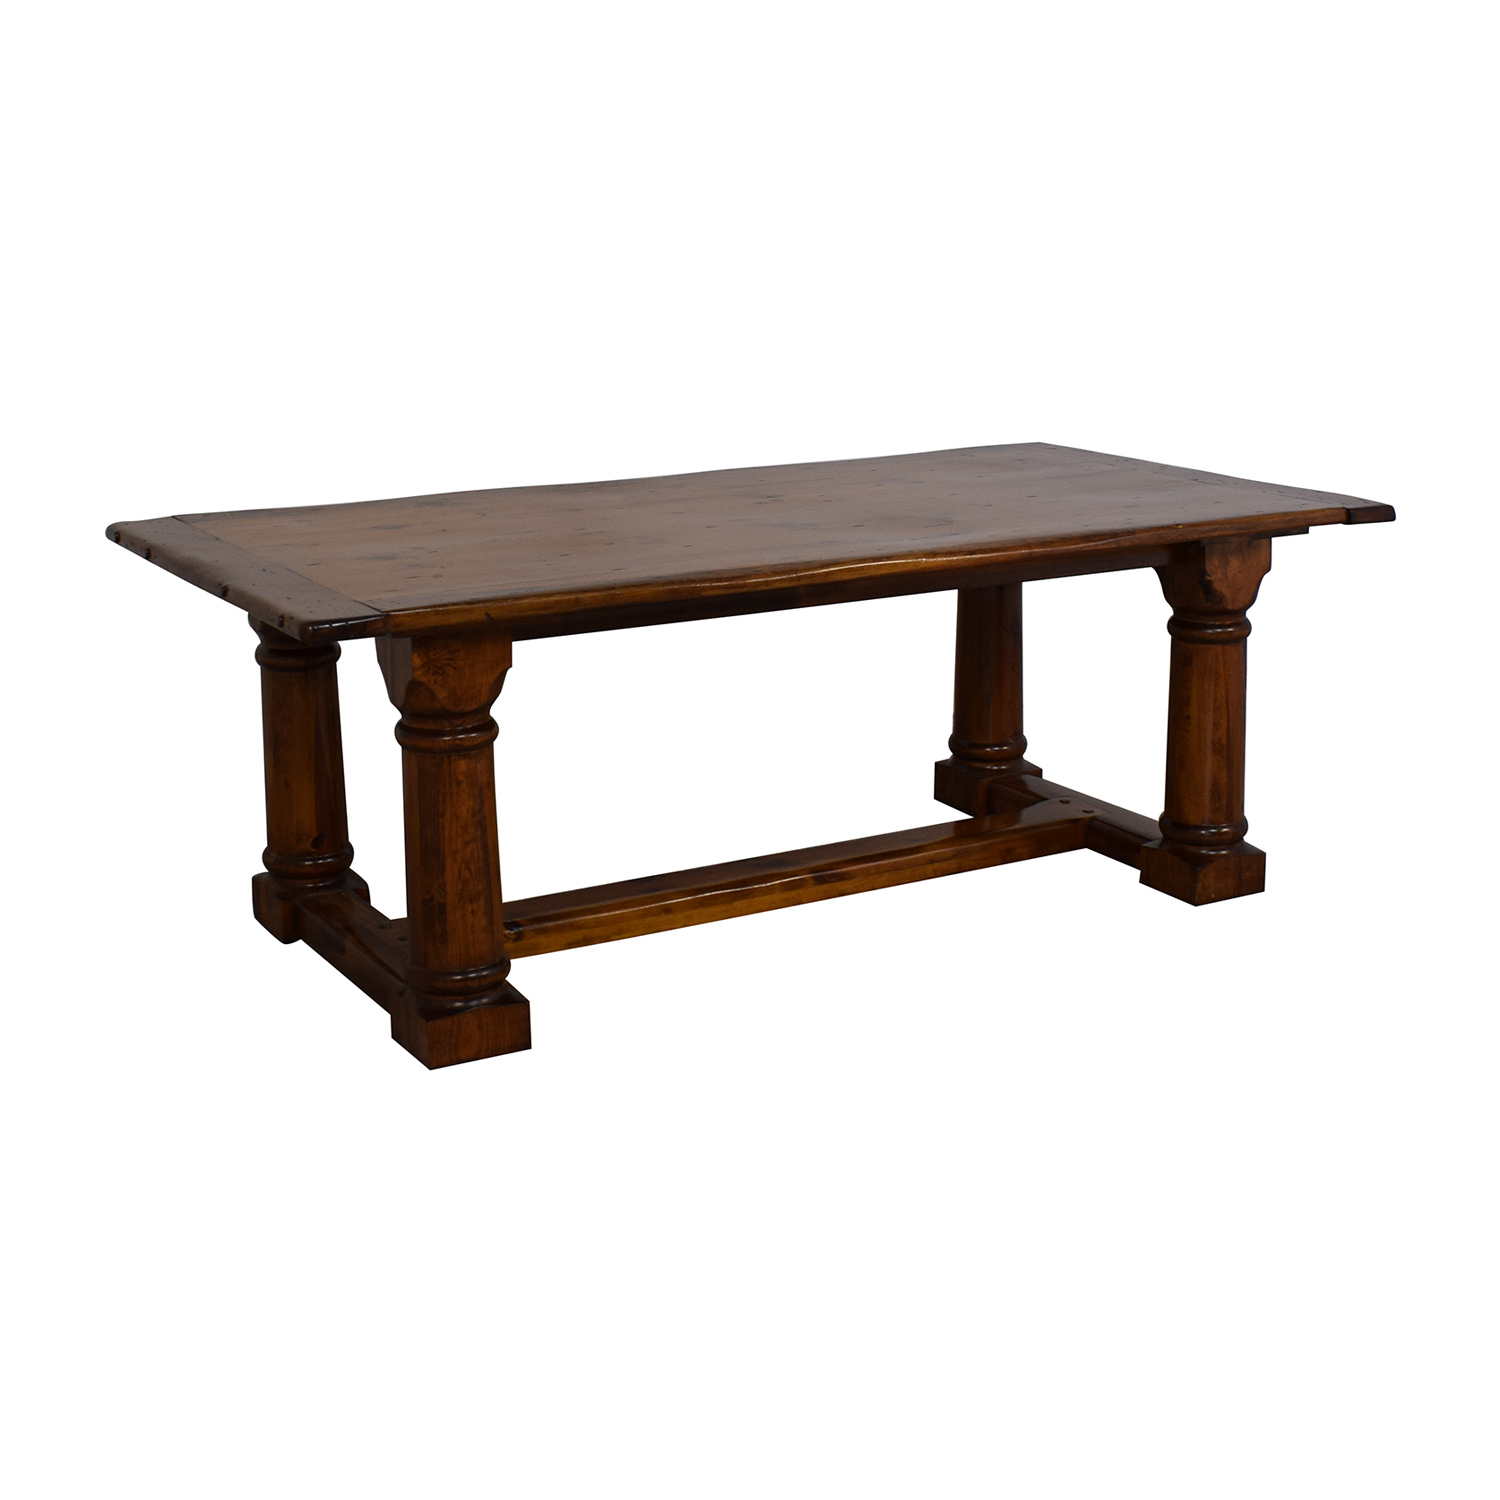 Ralph Lauren Home Ralph Lauren Farmhouse Dining Table used